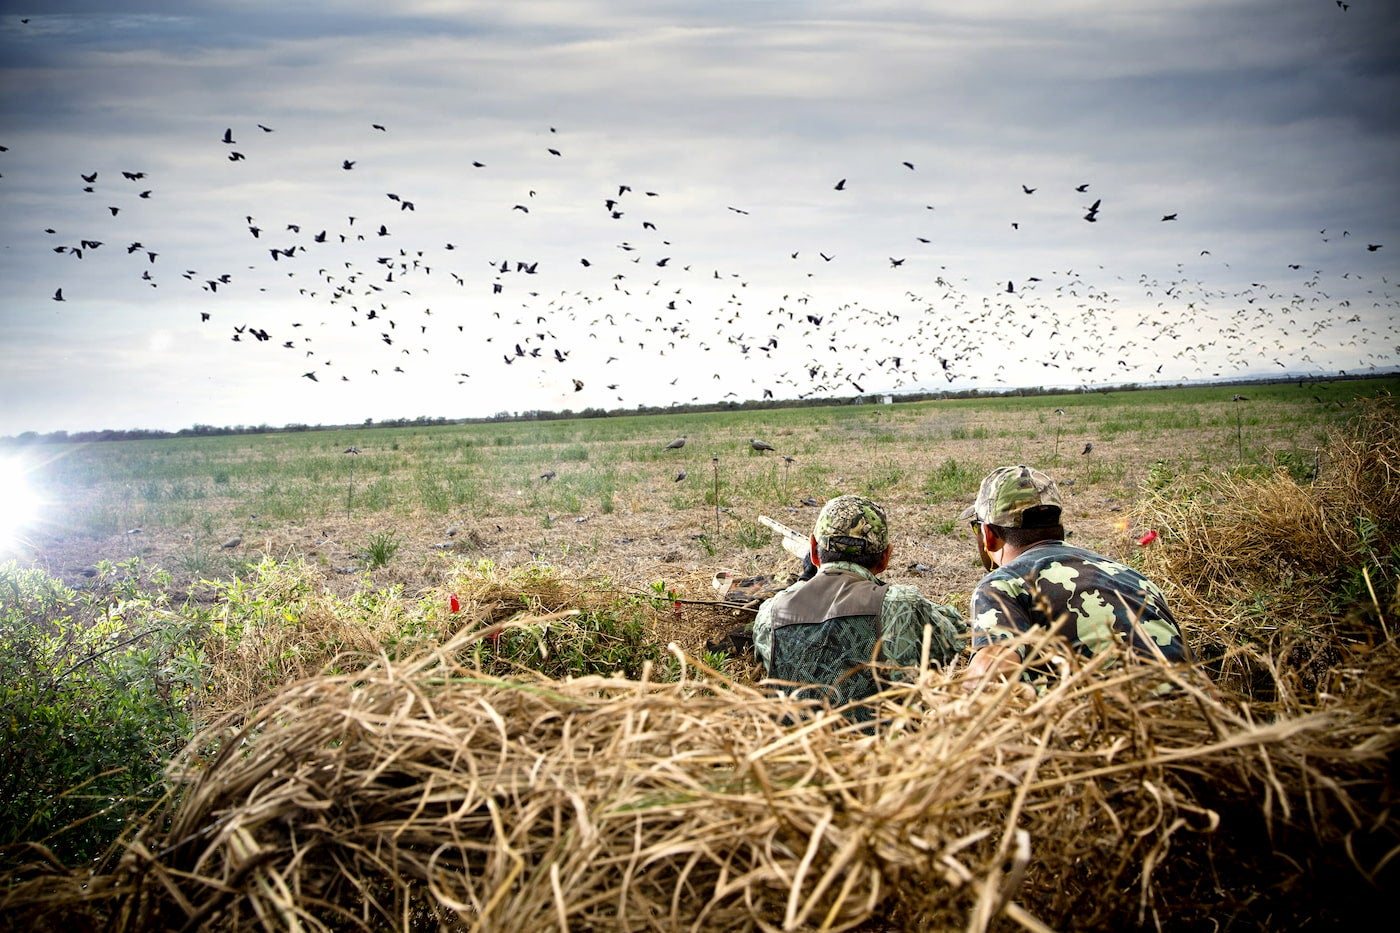 Hunters crouching a field below a flock of birds.